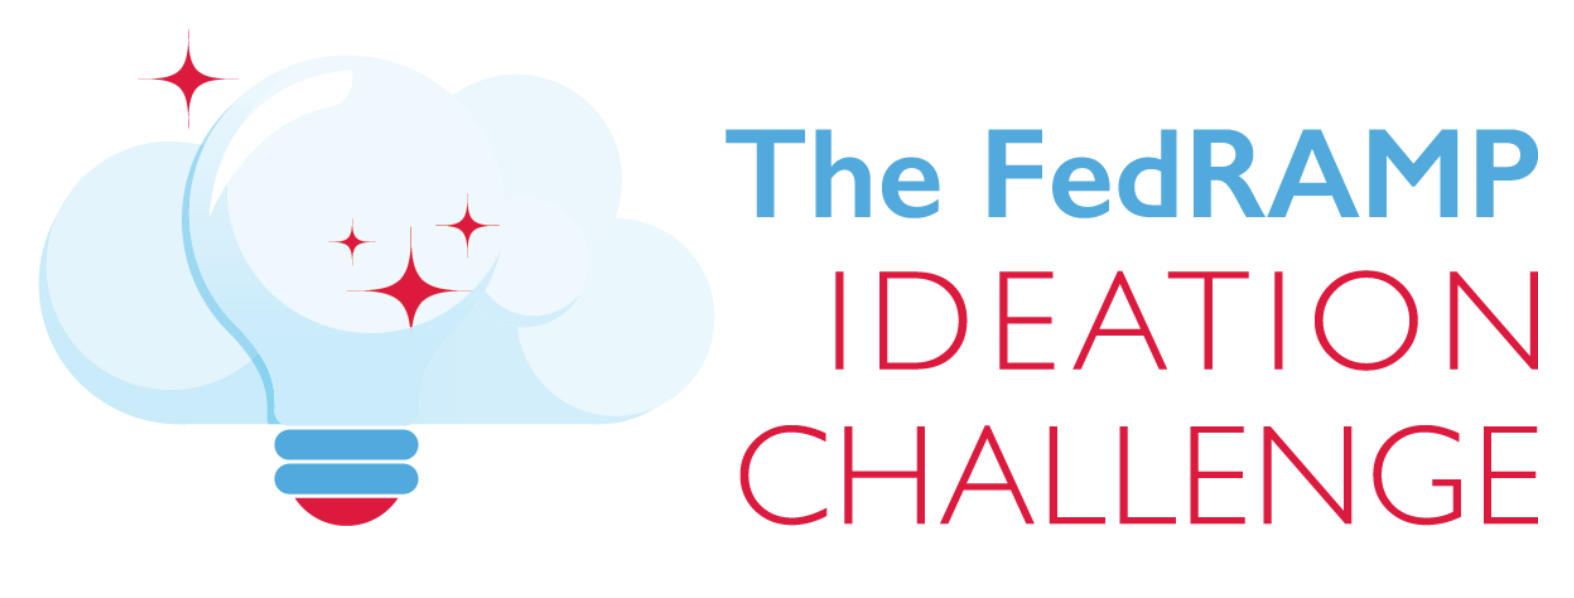 FedRAMP Launches Ideation Challenge